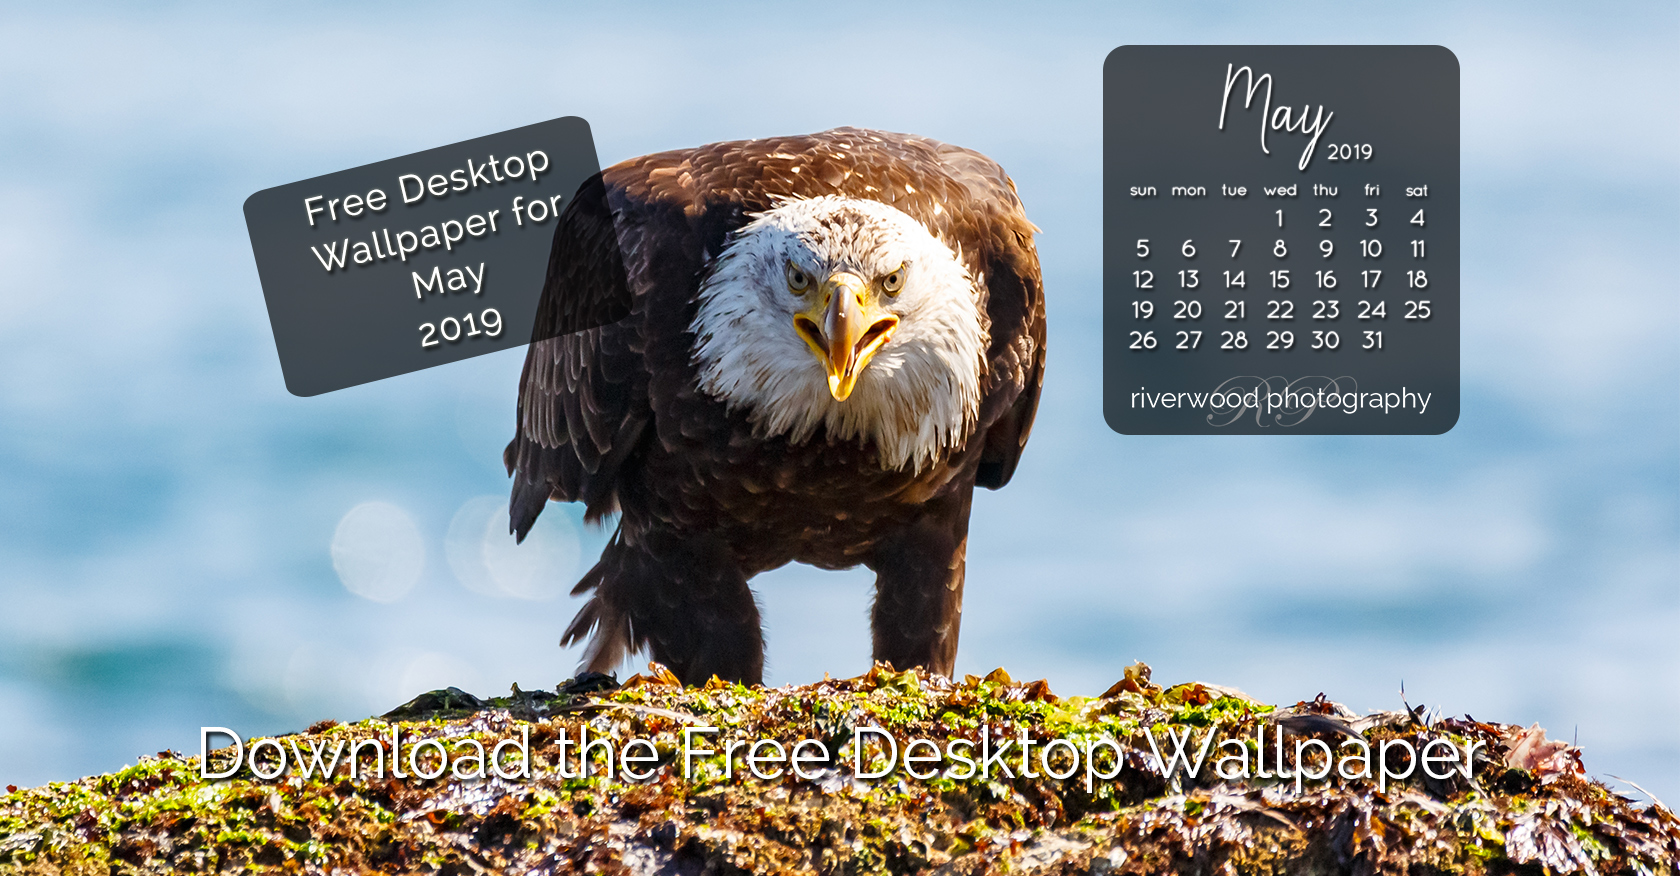 Free Desktop Wallpaper for May 2019 – Bald Eagle with Lunch